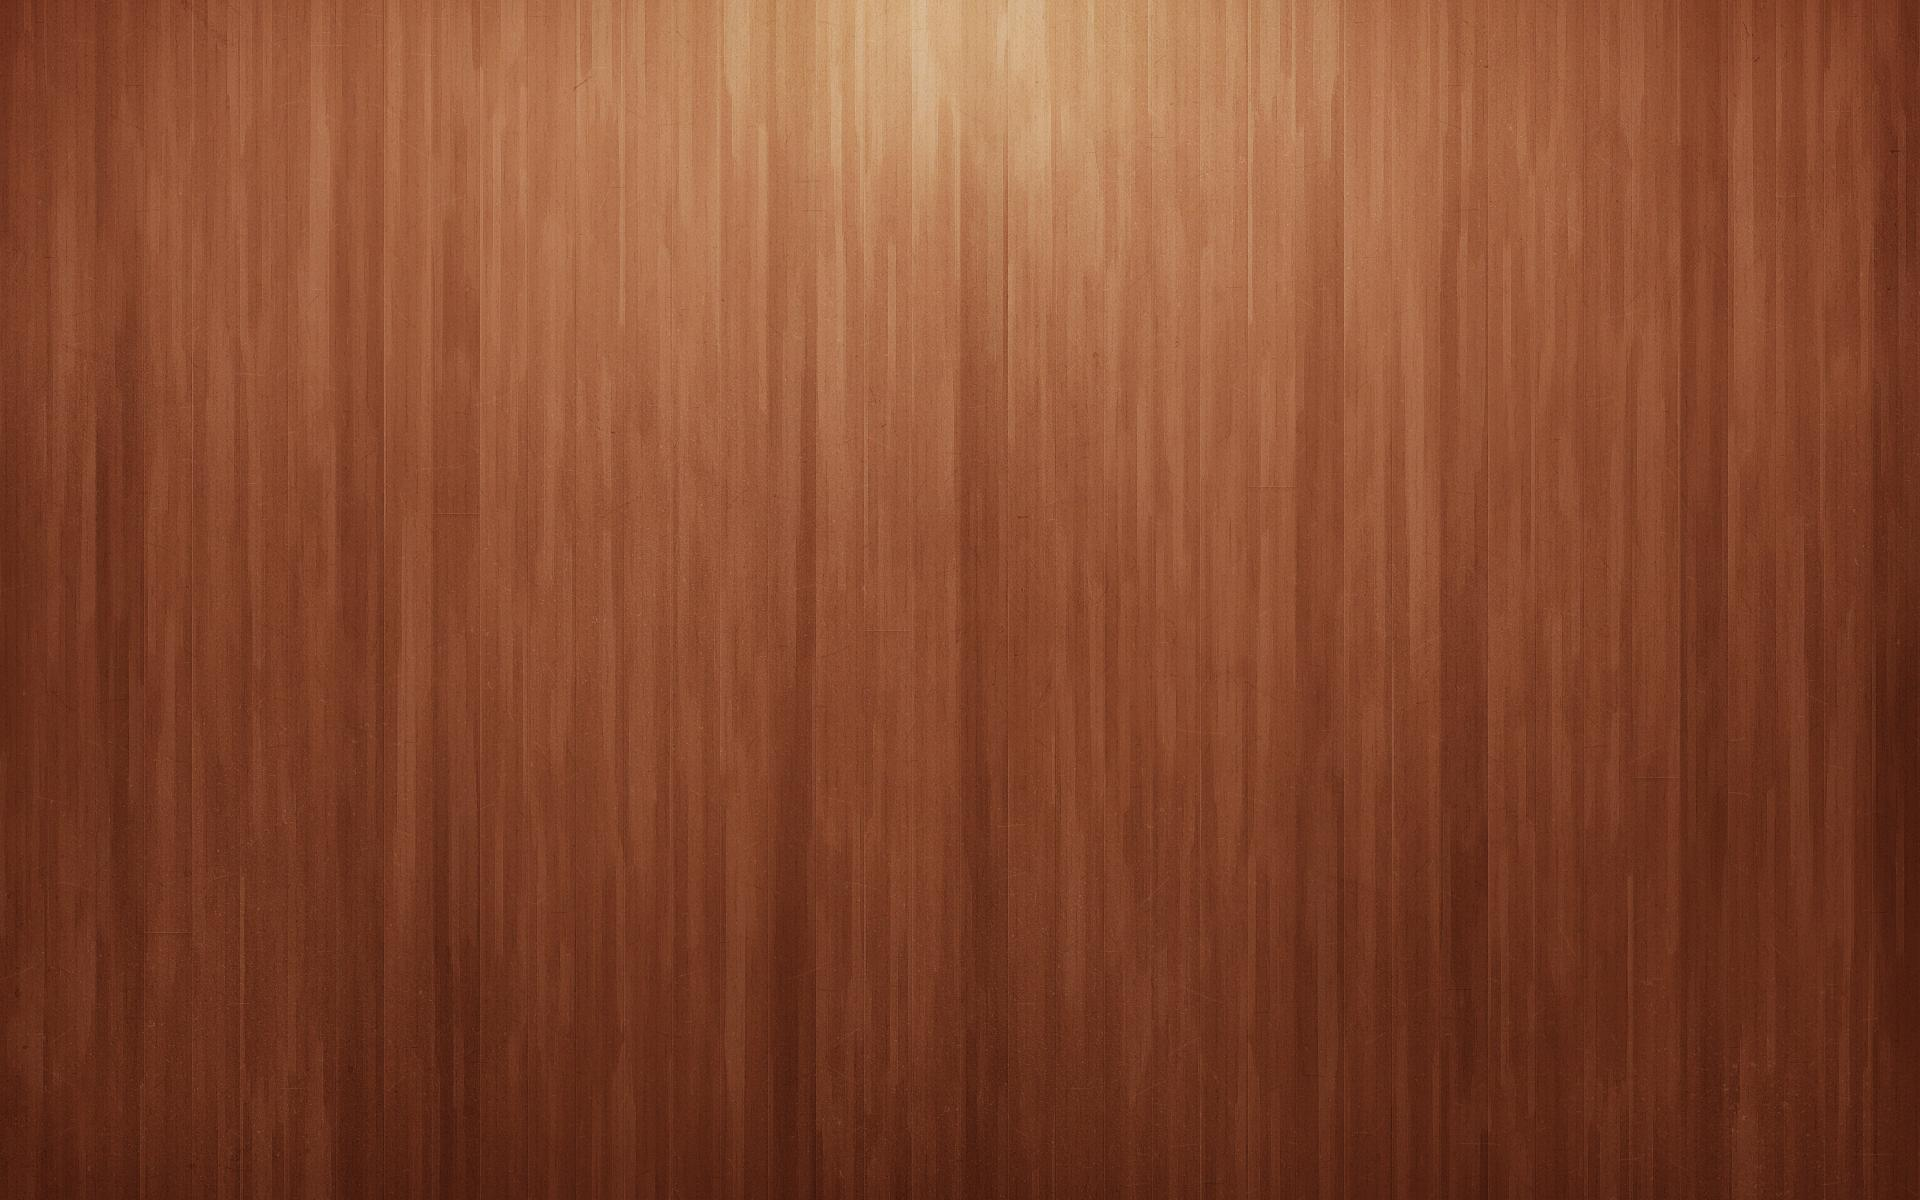 Dark-Wood-Desktop-%C3%97-Wood-Desktop-wallpaper-wpc9004033